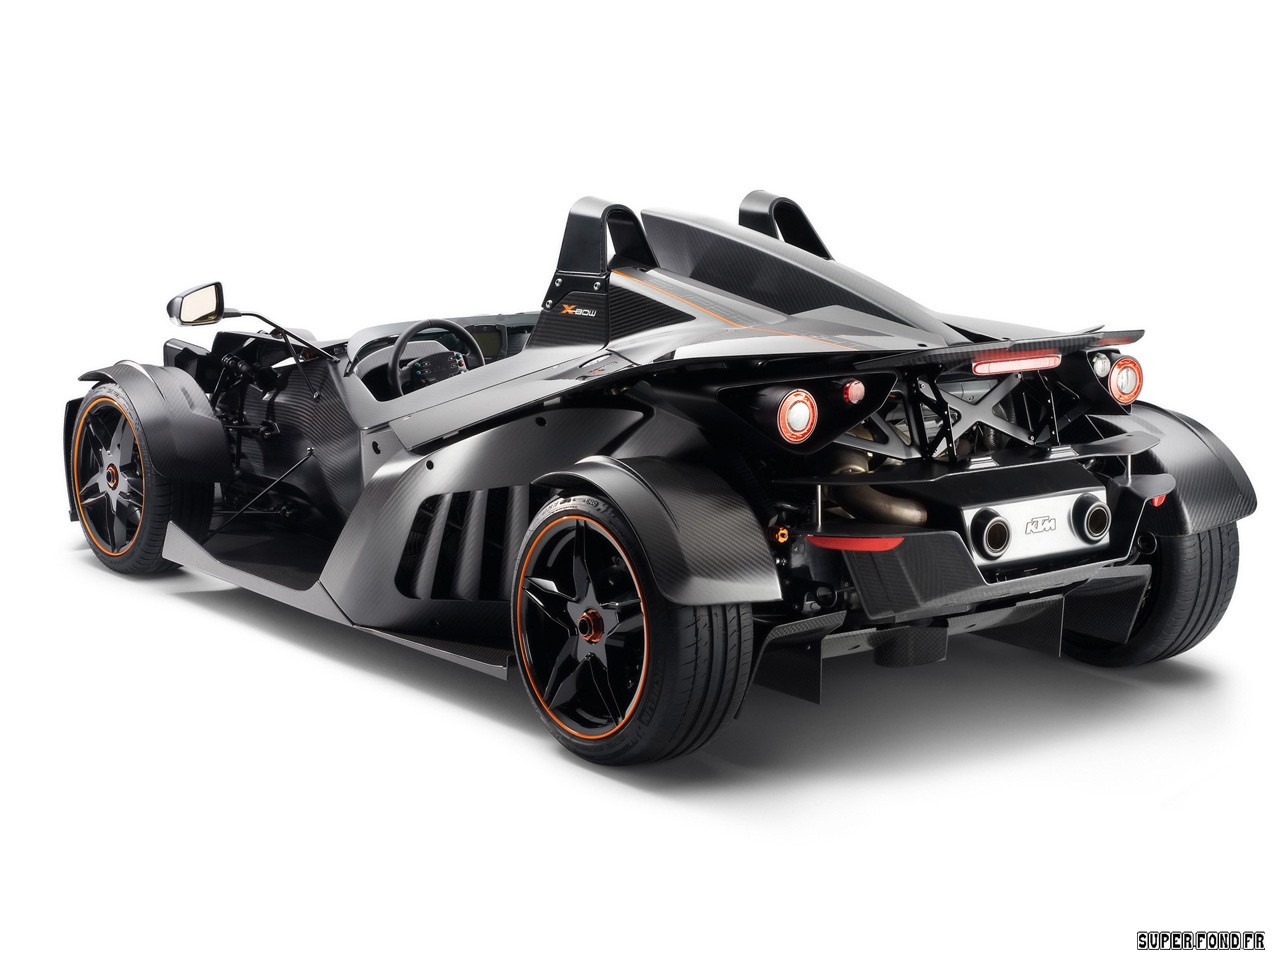 Ktm Xbow Superlight 2009